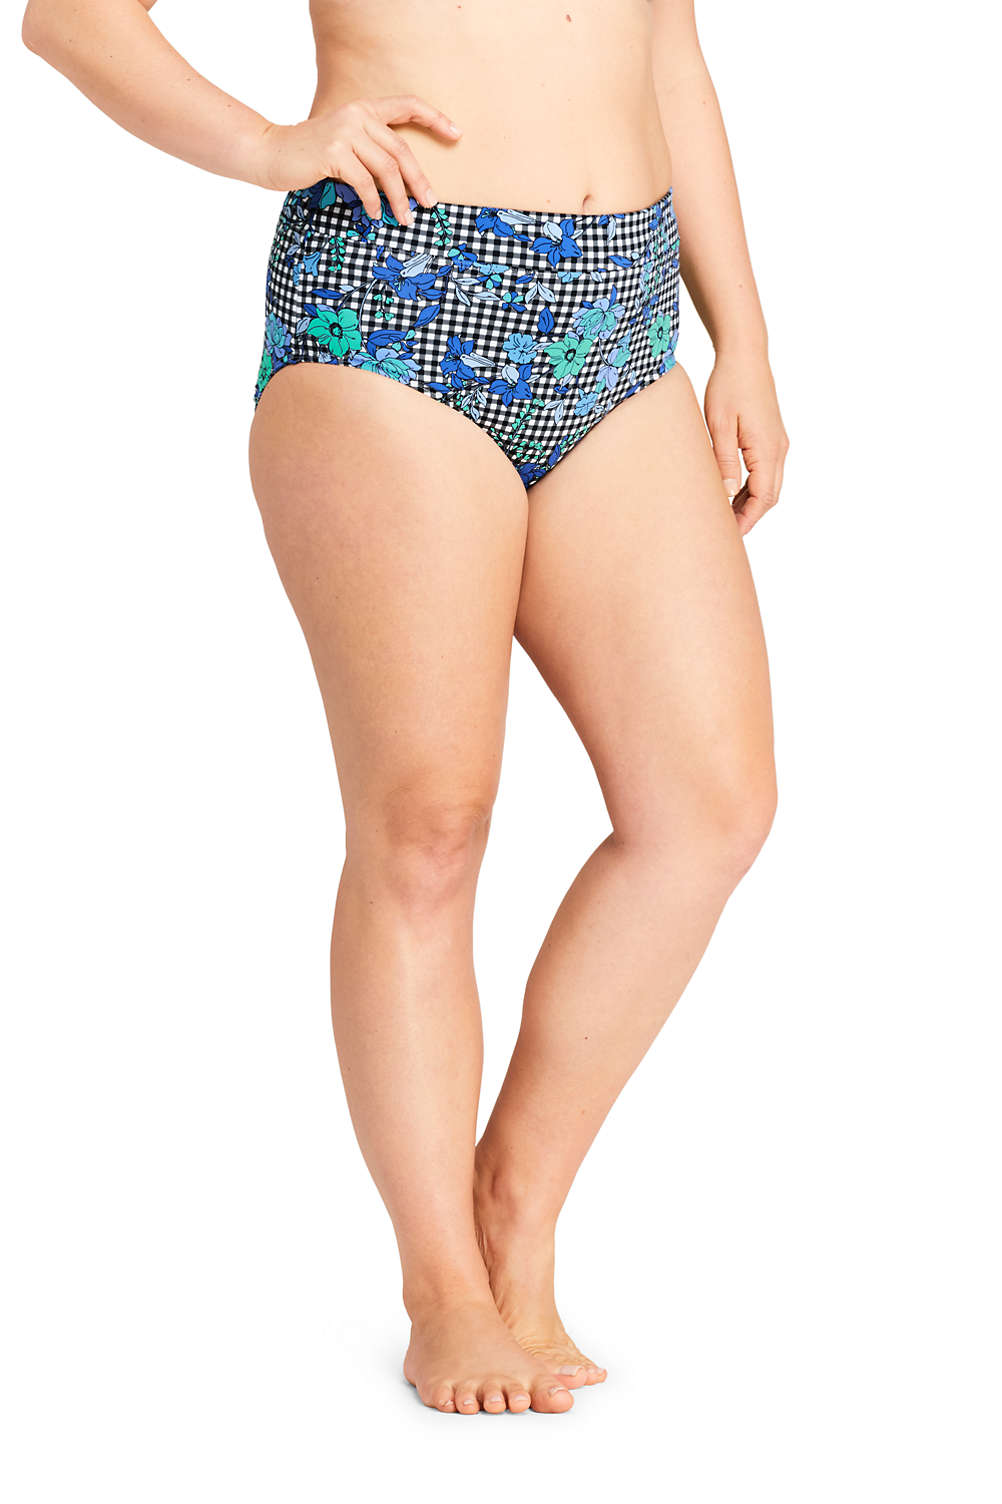 96a7ae129ad Women's Plus Size High Waisted Bikini Bottoms with Tummy Control Print from  Lands' End